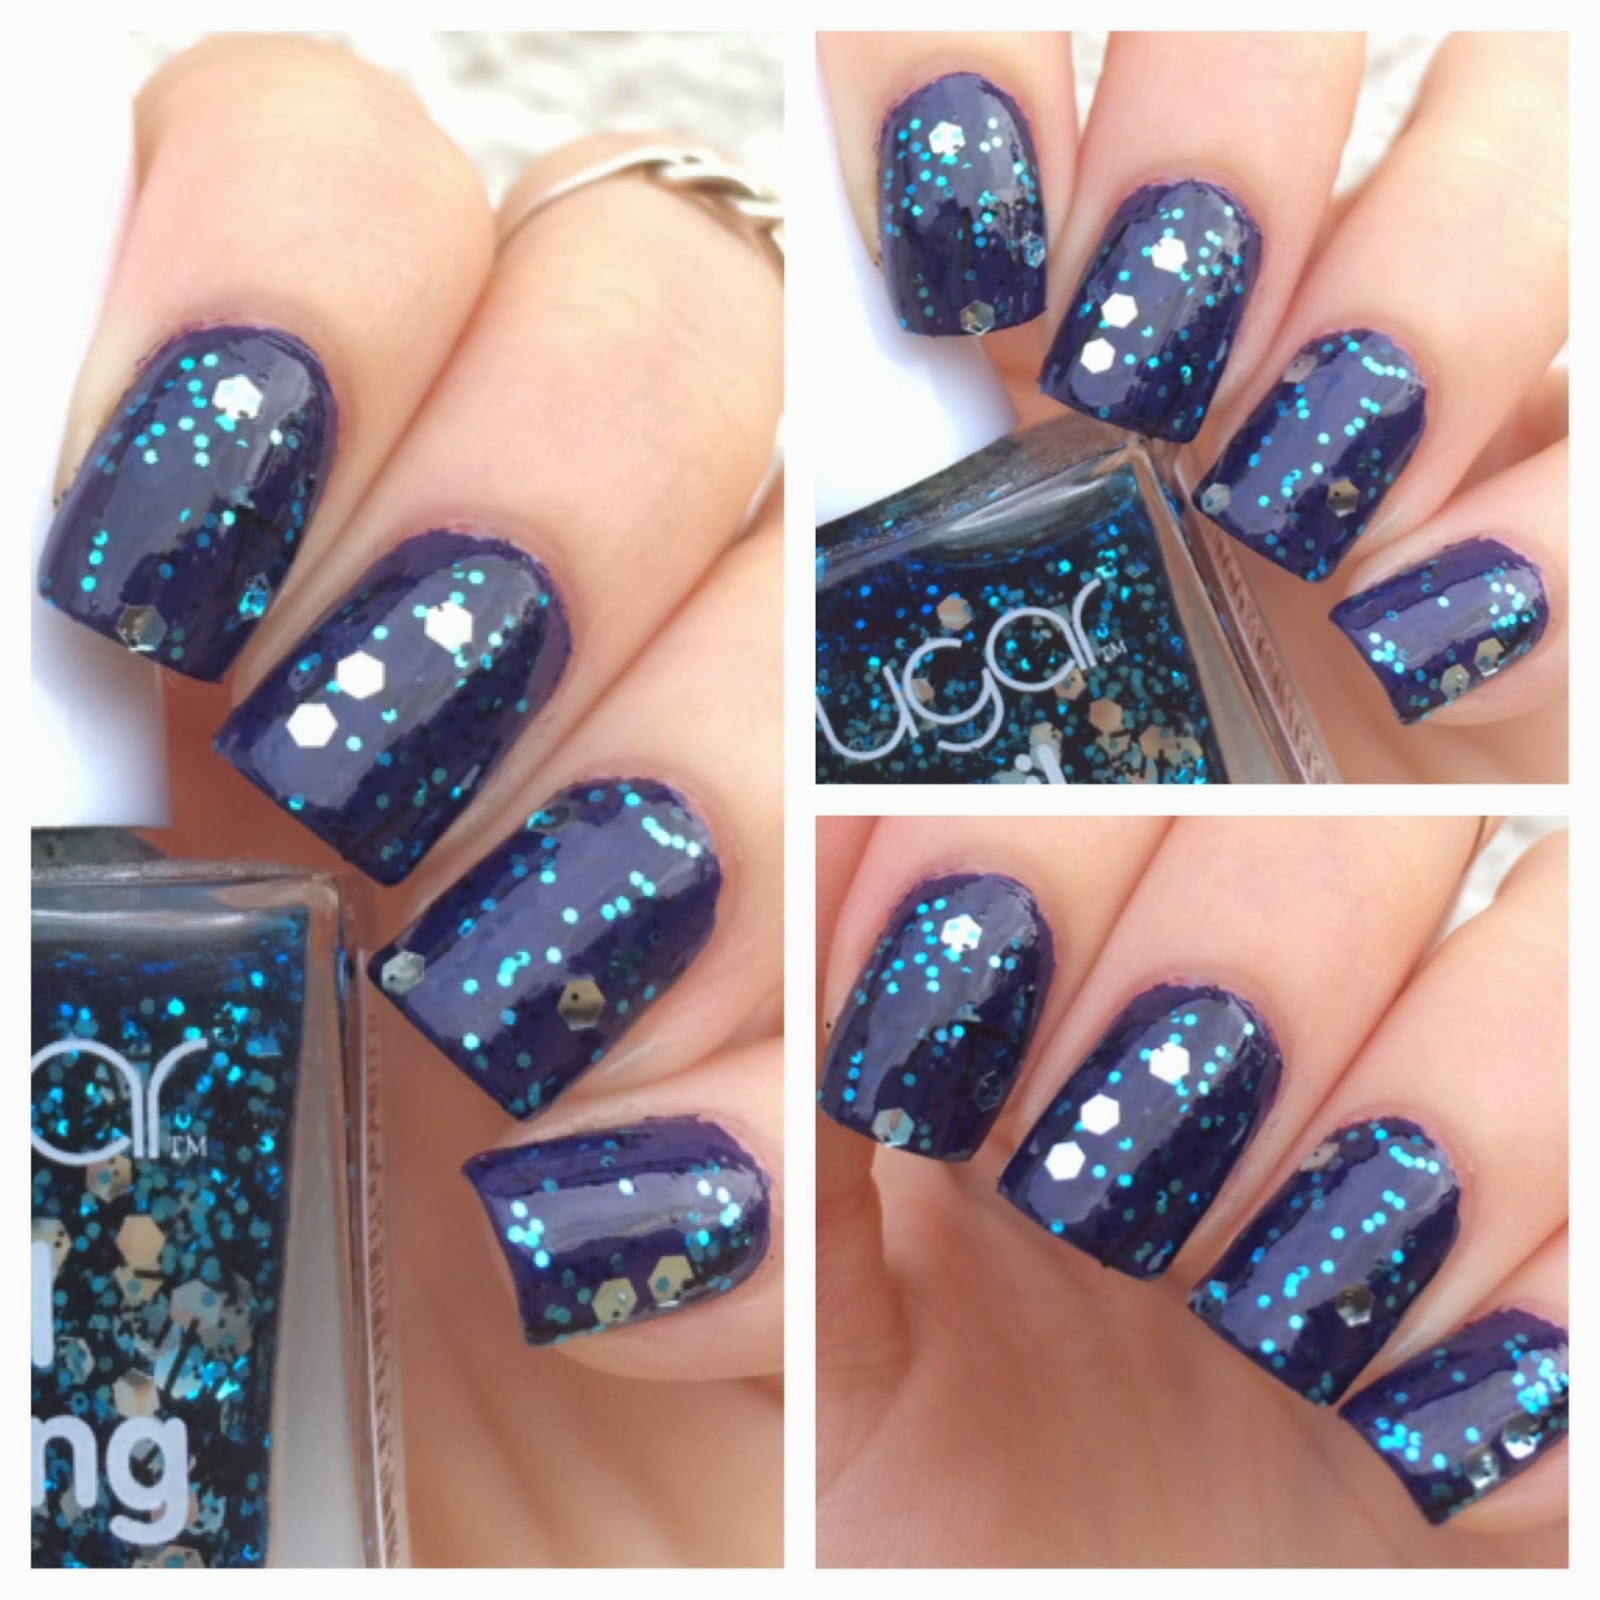 Shimmer And Sparkle Nail Polish: Cat Eyes & Skinny Jeans: Sugar Nail Frosting Glitter Nail